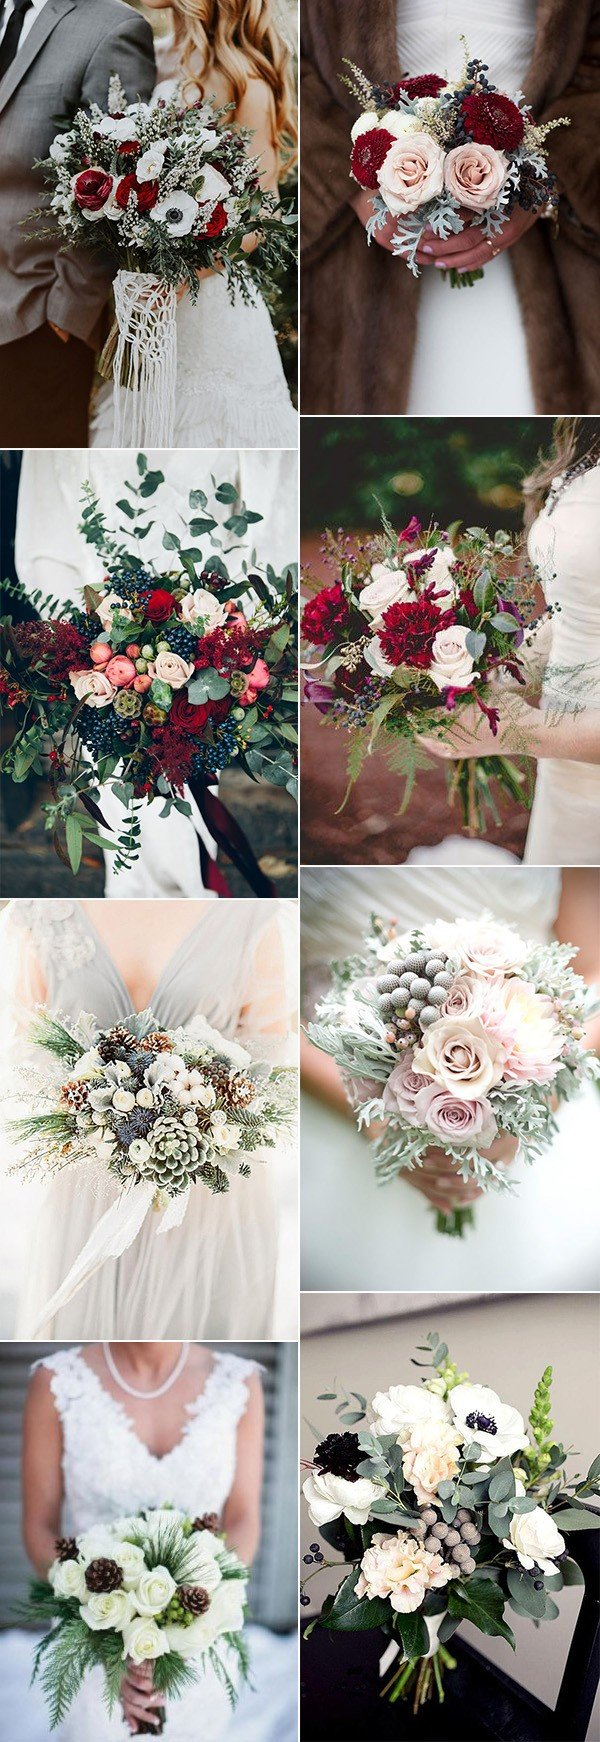 Winter wedding decorations archives oh best day ever wedding bouquets for winter wedding ideas 2017 junglespirit